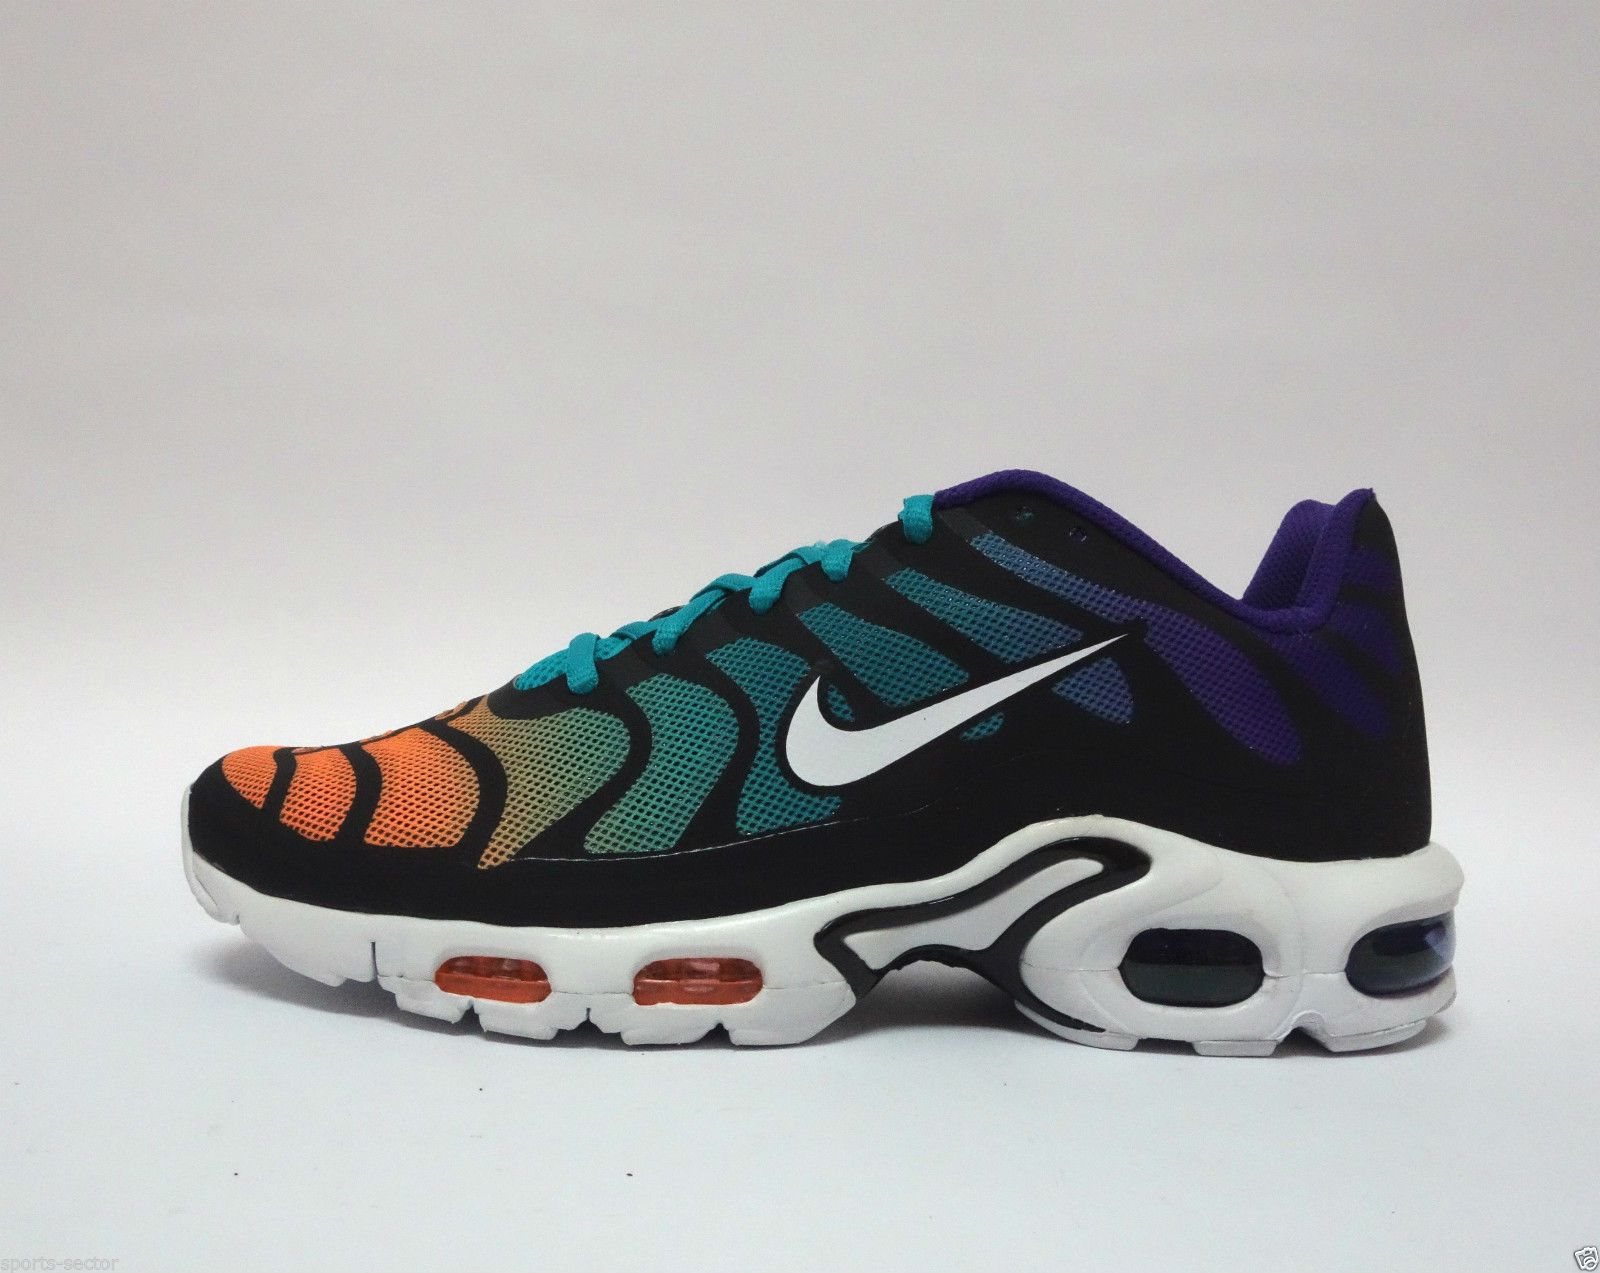 Nike Air Max Plus Hyperfuse TN1 Tuned Mens Trainers Shoes Turbo Green/White